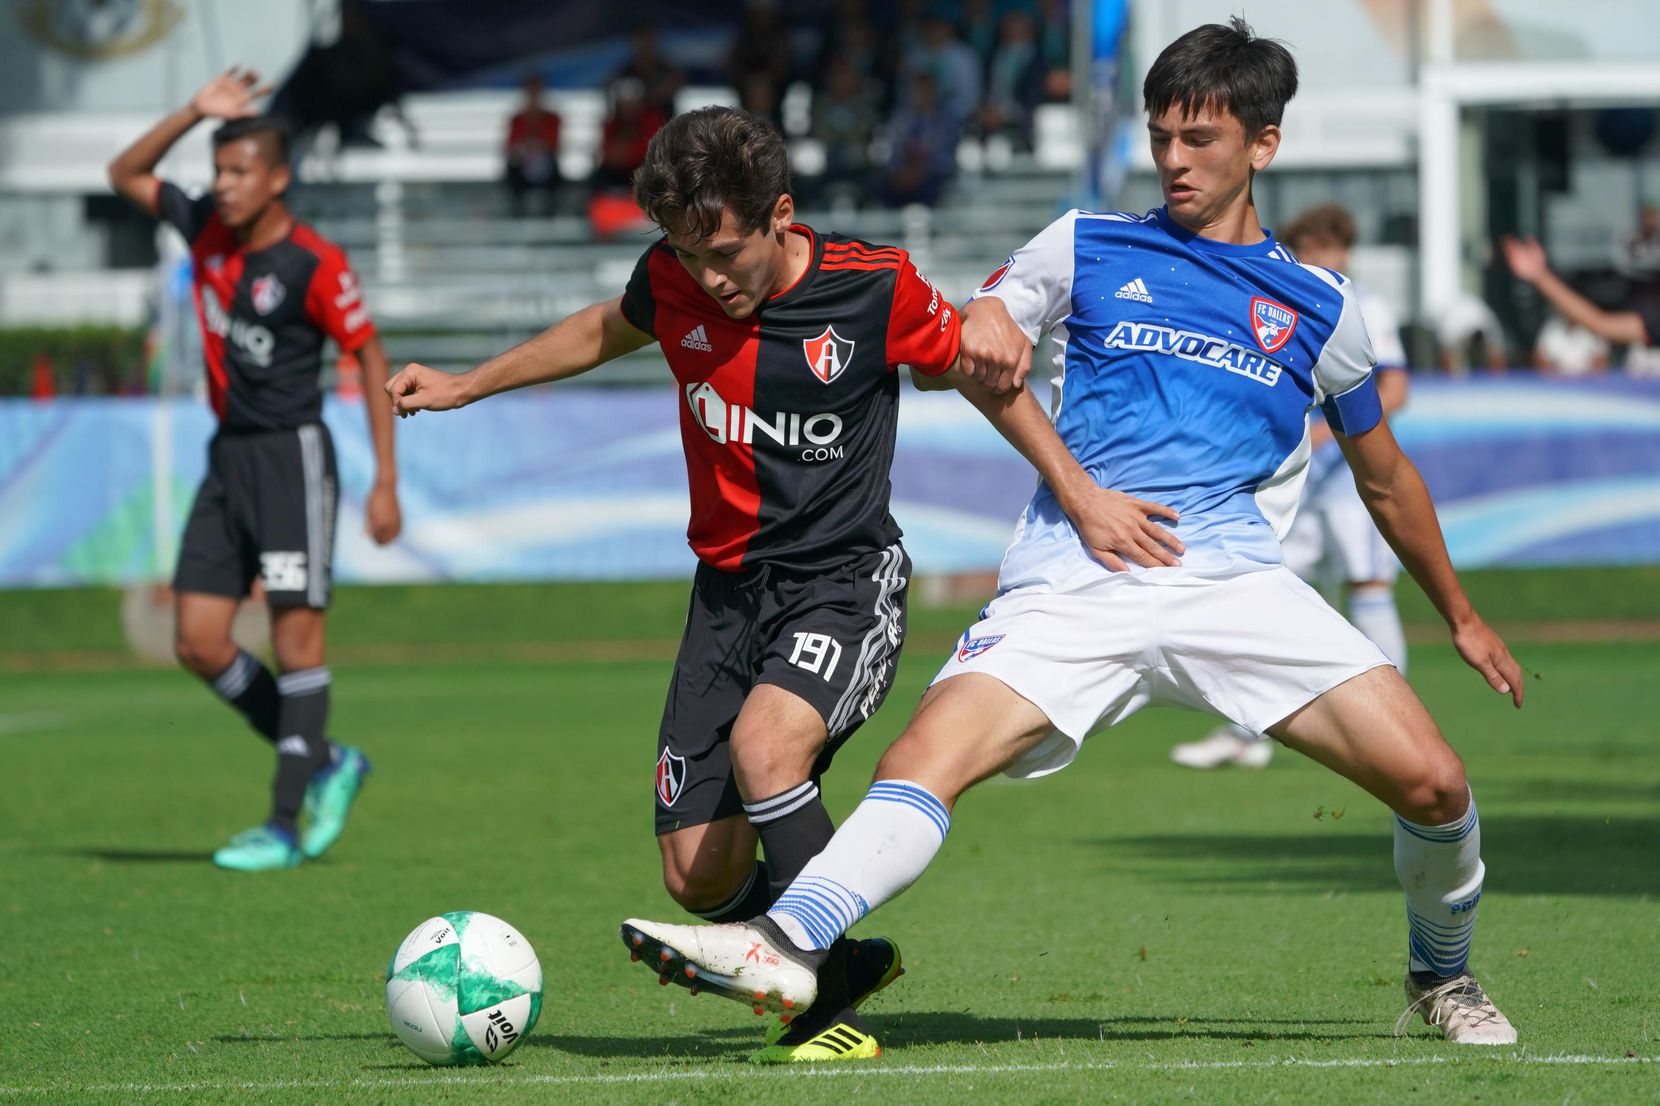 Diego Letayf of the FC Dallas Academy playing against Atlas in the 2018 Torneo Internacional.